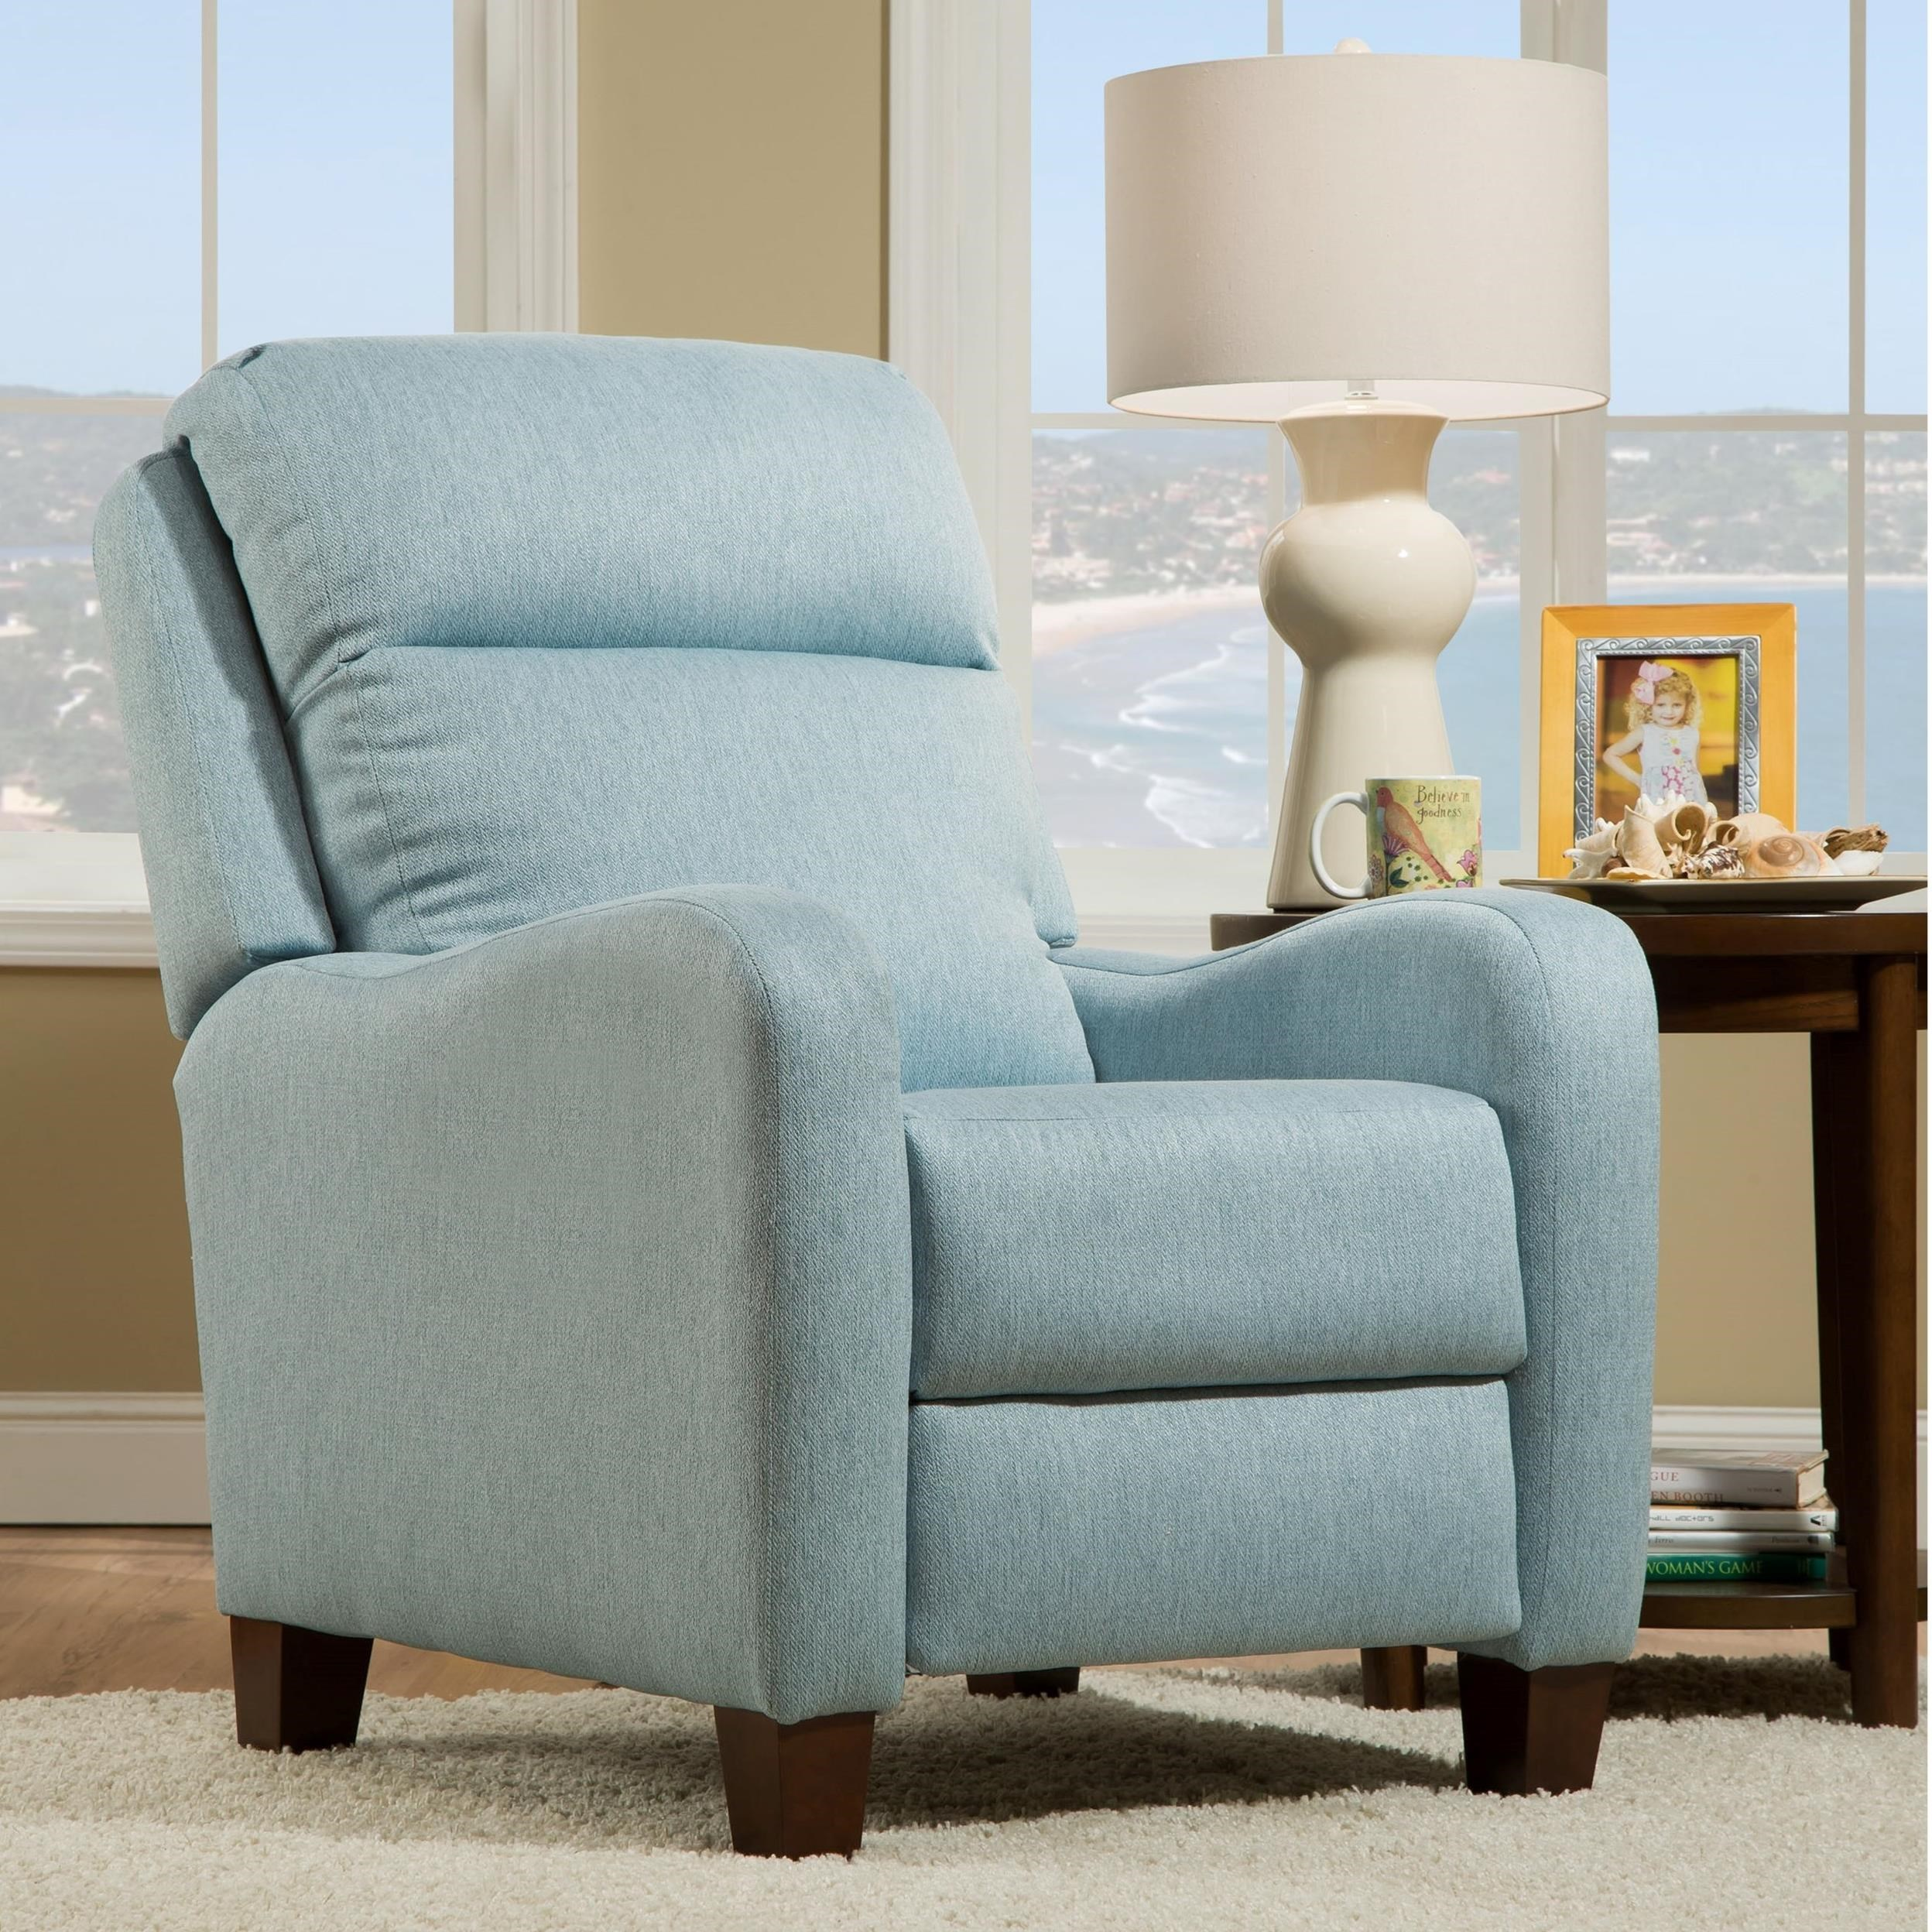 Prestige Power Headrest High Leg Recliner w/ SoCozi by Southern Motion at H.L. Stephens